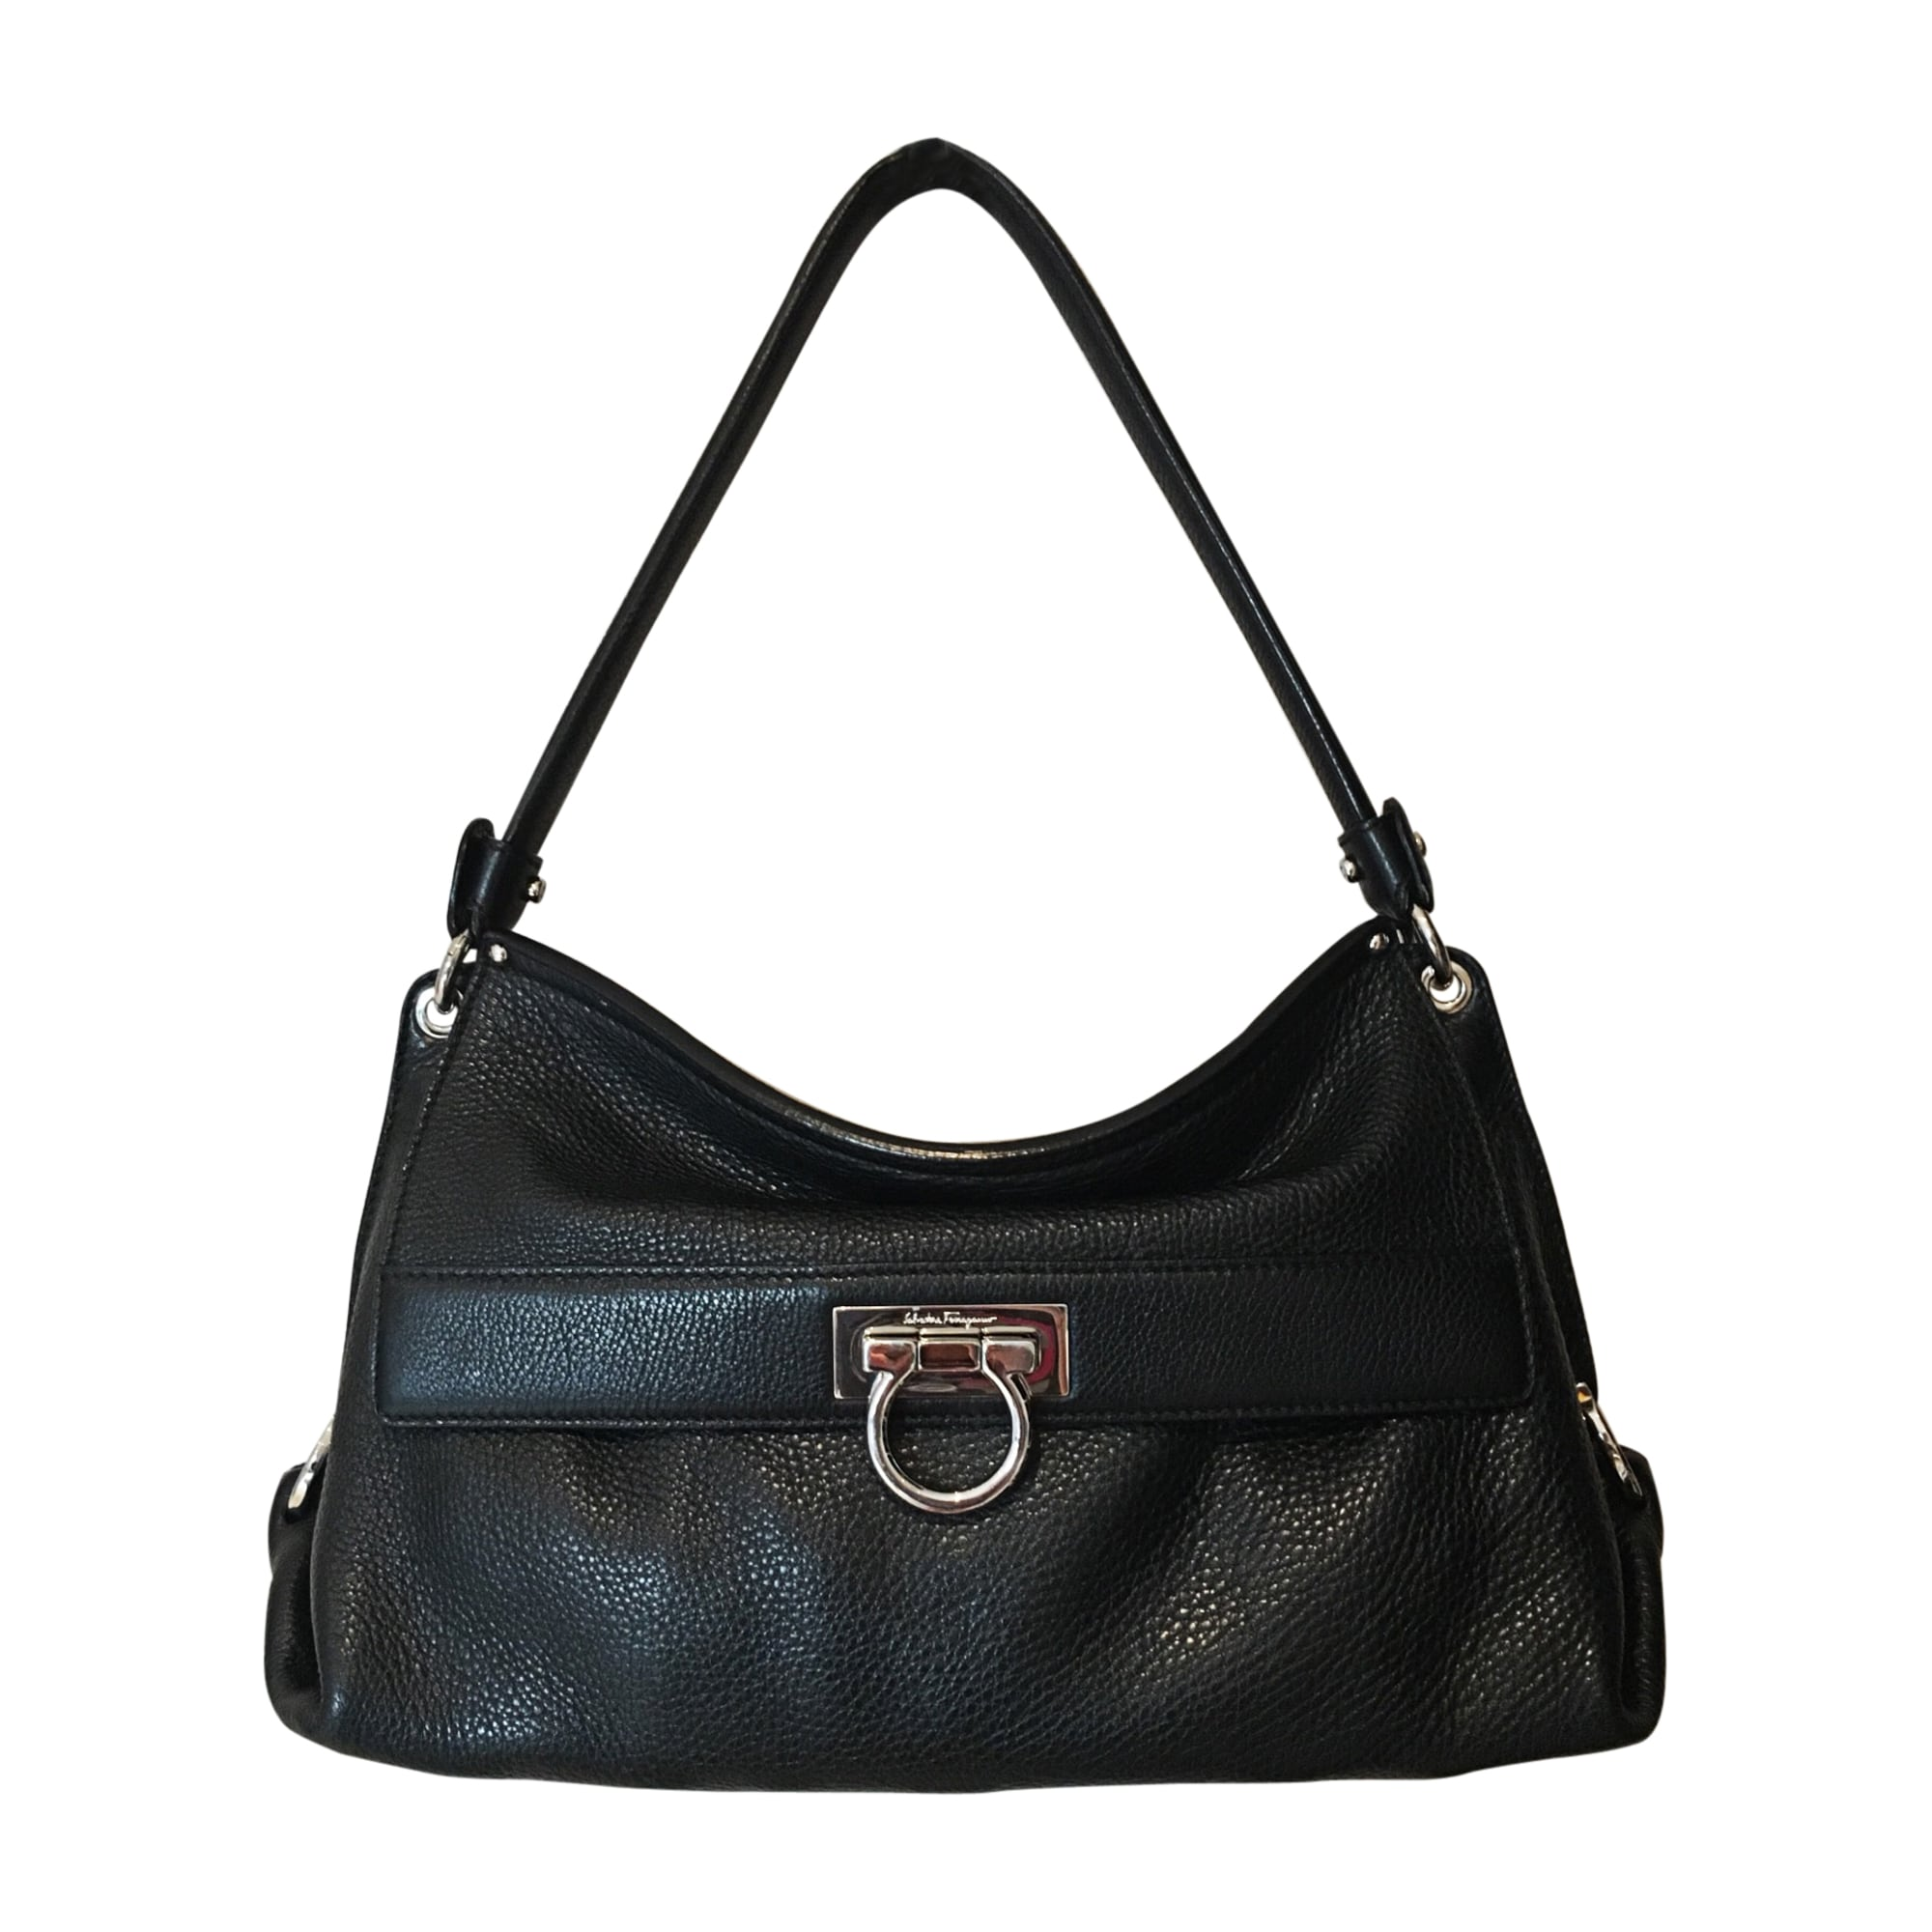 Leather Handbag SALVATORE FERRAGAMO black - 7748765 0c9ae9bcdd3a0